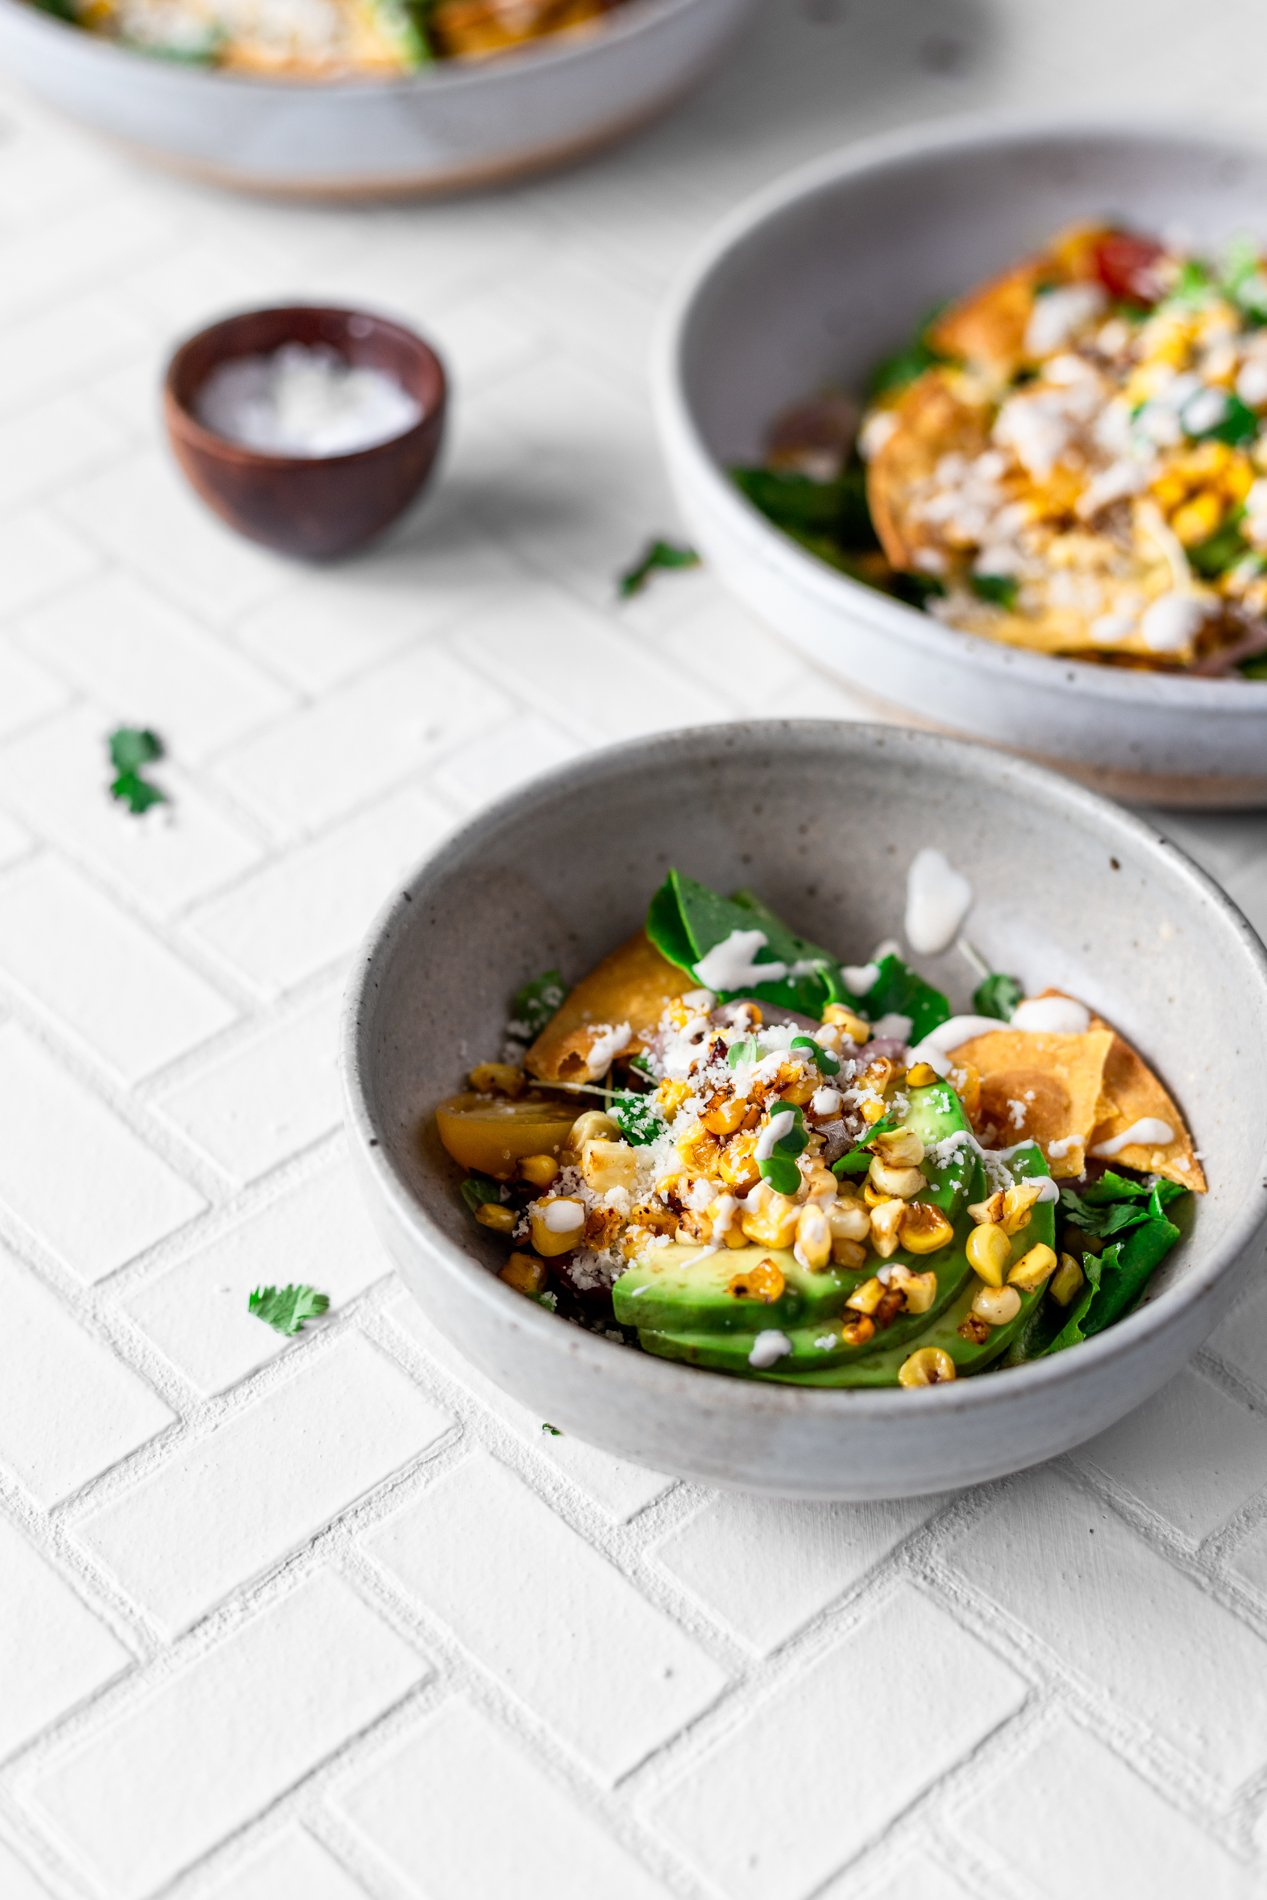 angled view of a small bowl of mexican street corn salad with two larger bowls in the background along with a tiny bowl of sea salt and scattered pieces of cilantro